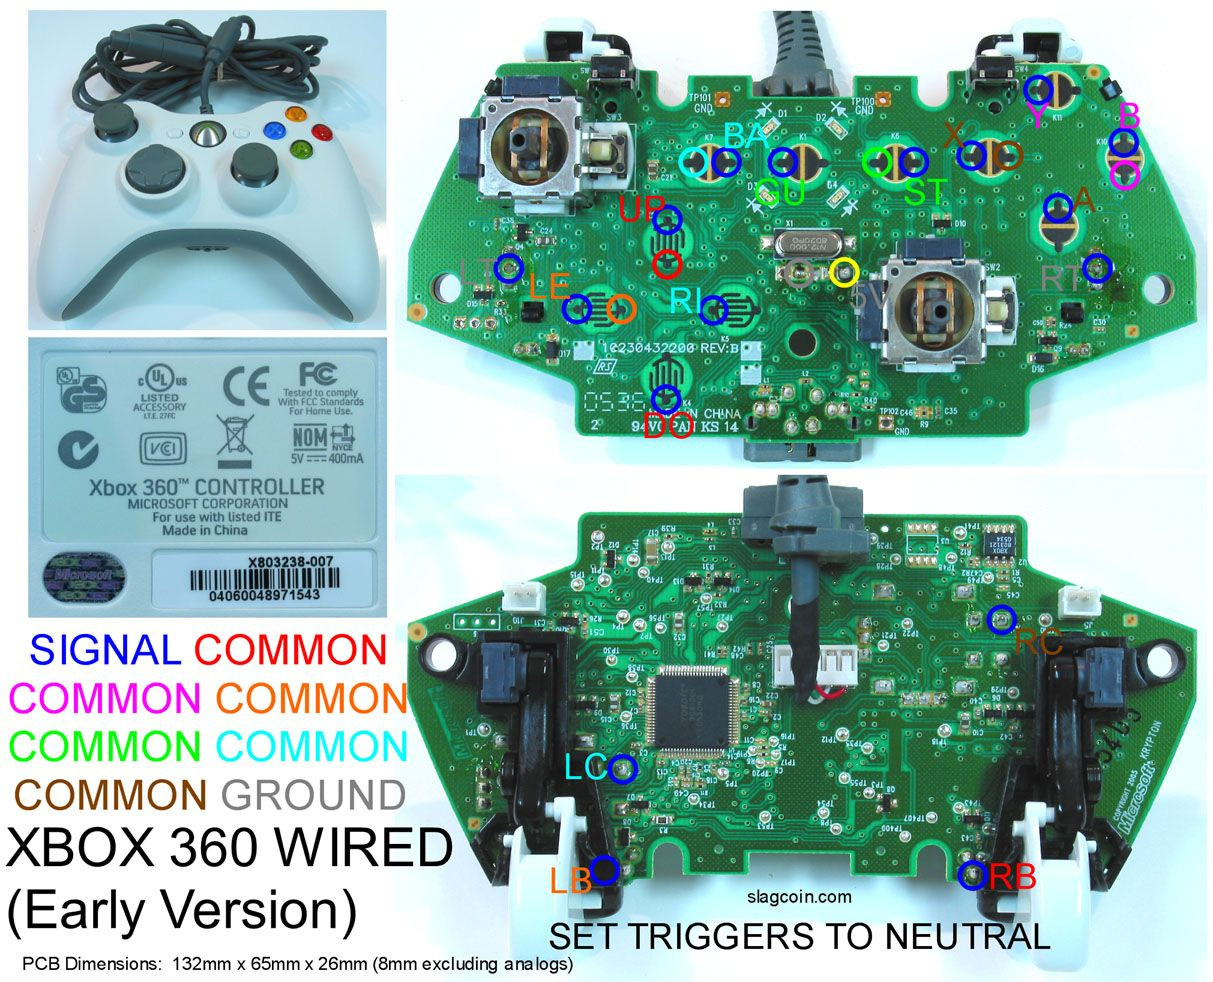 medium resolution of xbox 360 wireless controller circuit board diagram xbox 360 wireless xbox 360 slim wiring diagram xbox 360 wiring diagram